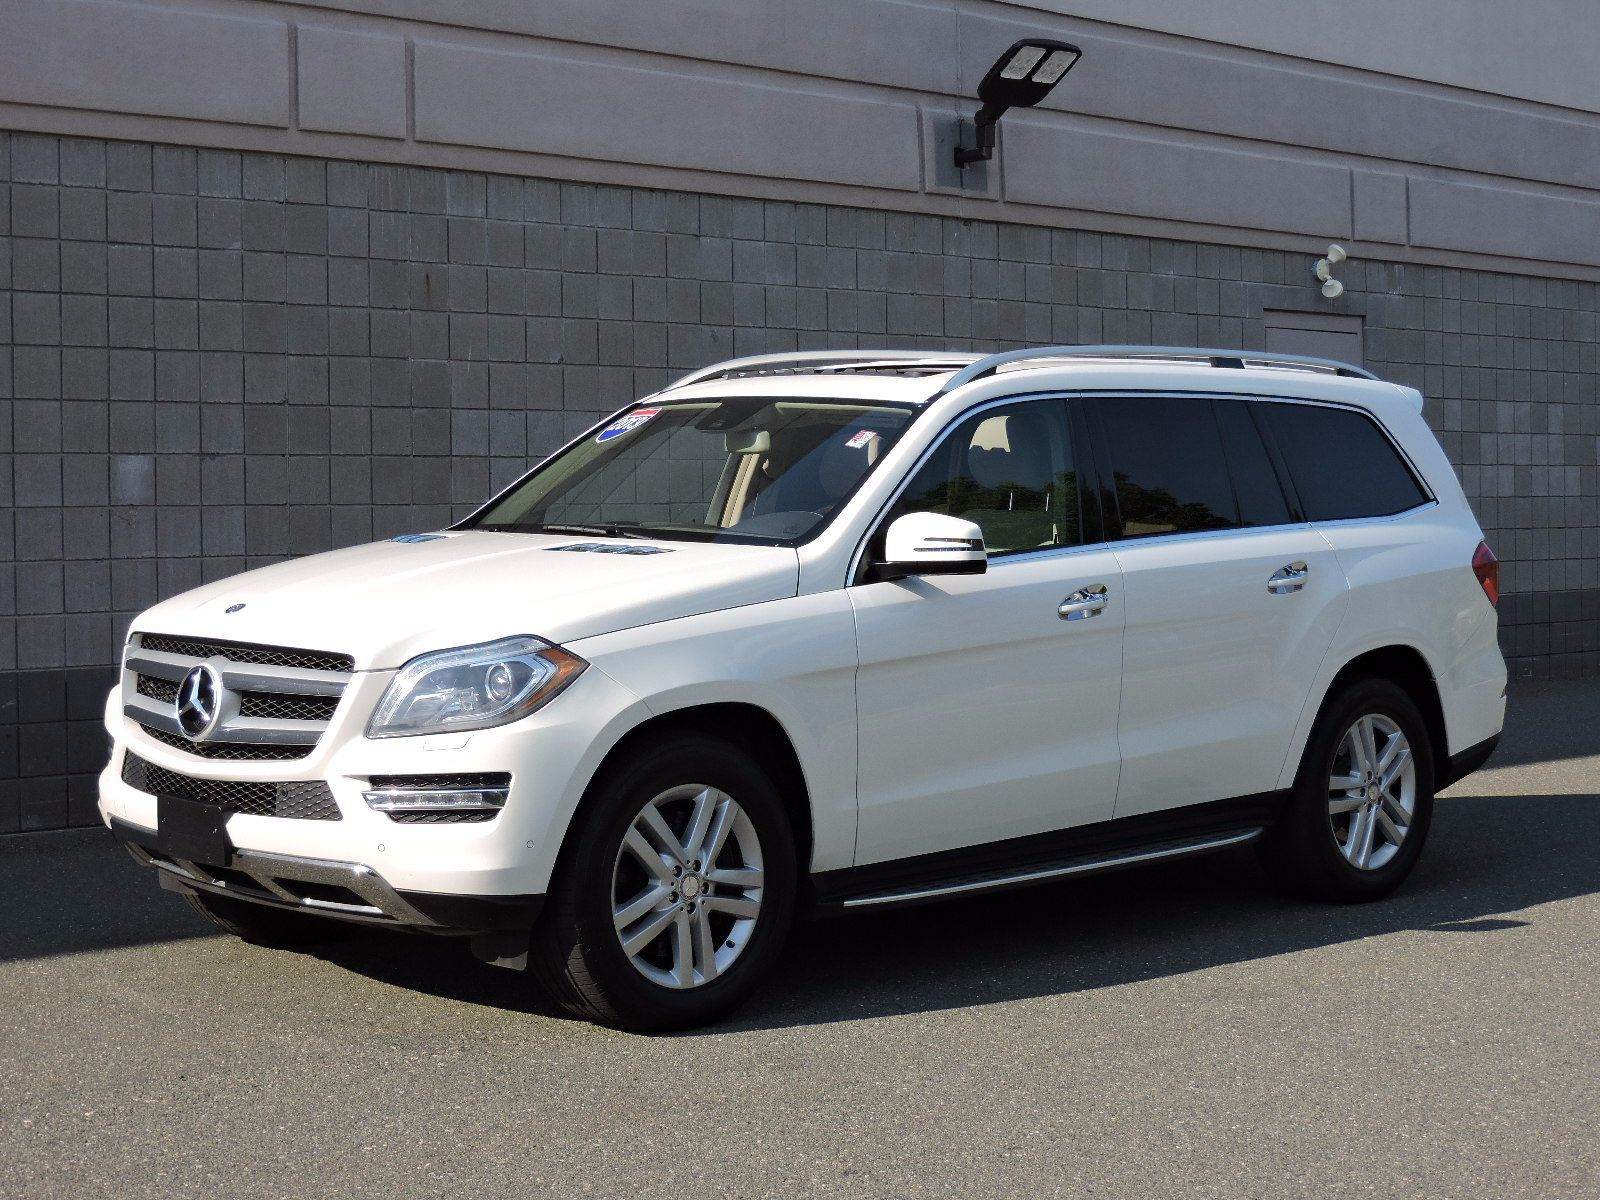 Used 2013 mercedes benz gl class gl450 at auto house usa for 2013 mercedes benz gl450 price